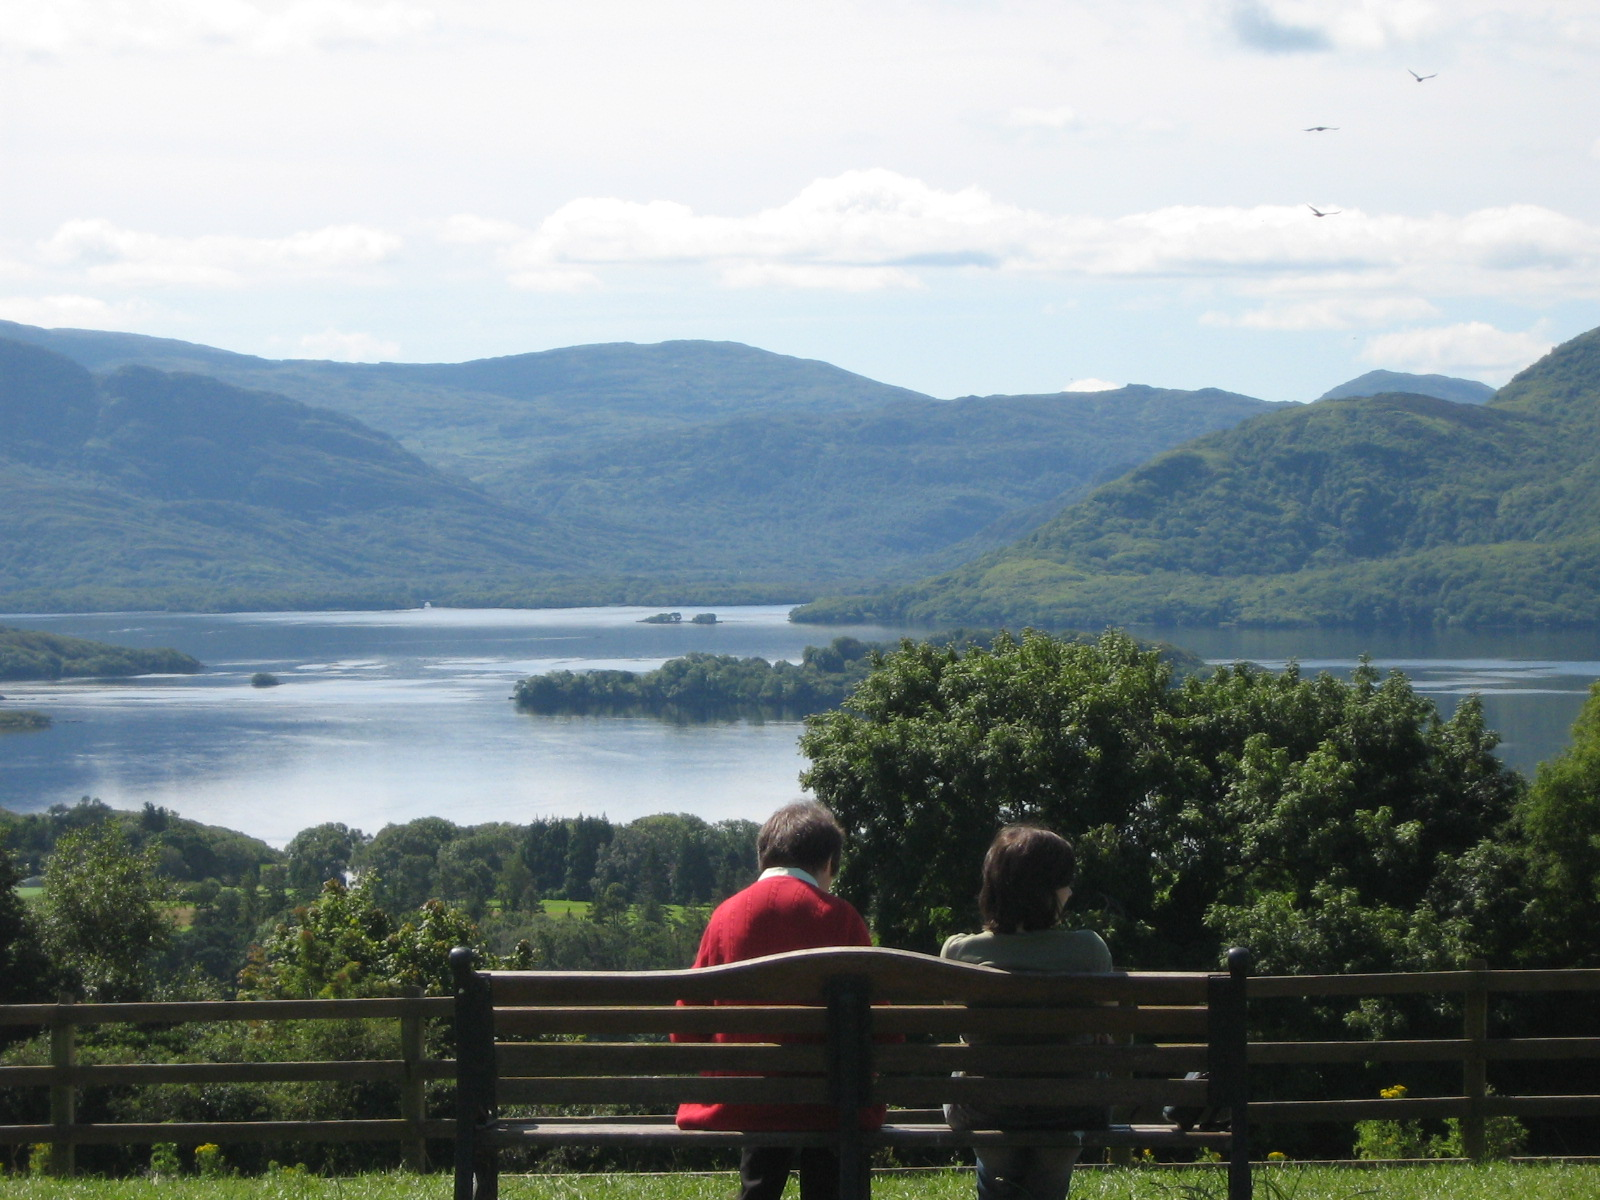 Things to Do - Viewing Killarney Lakes at Aghadoe